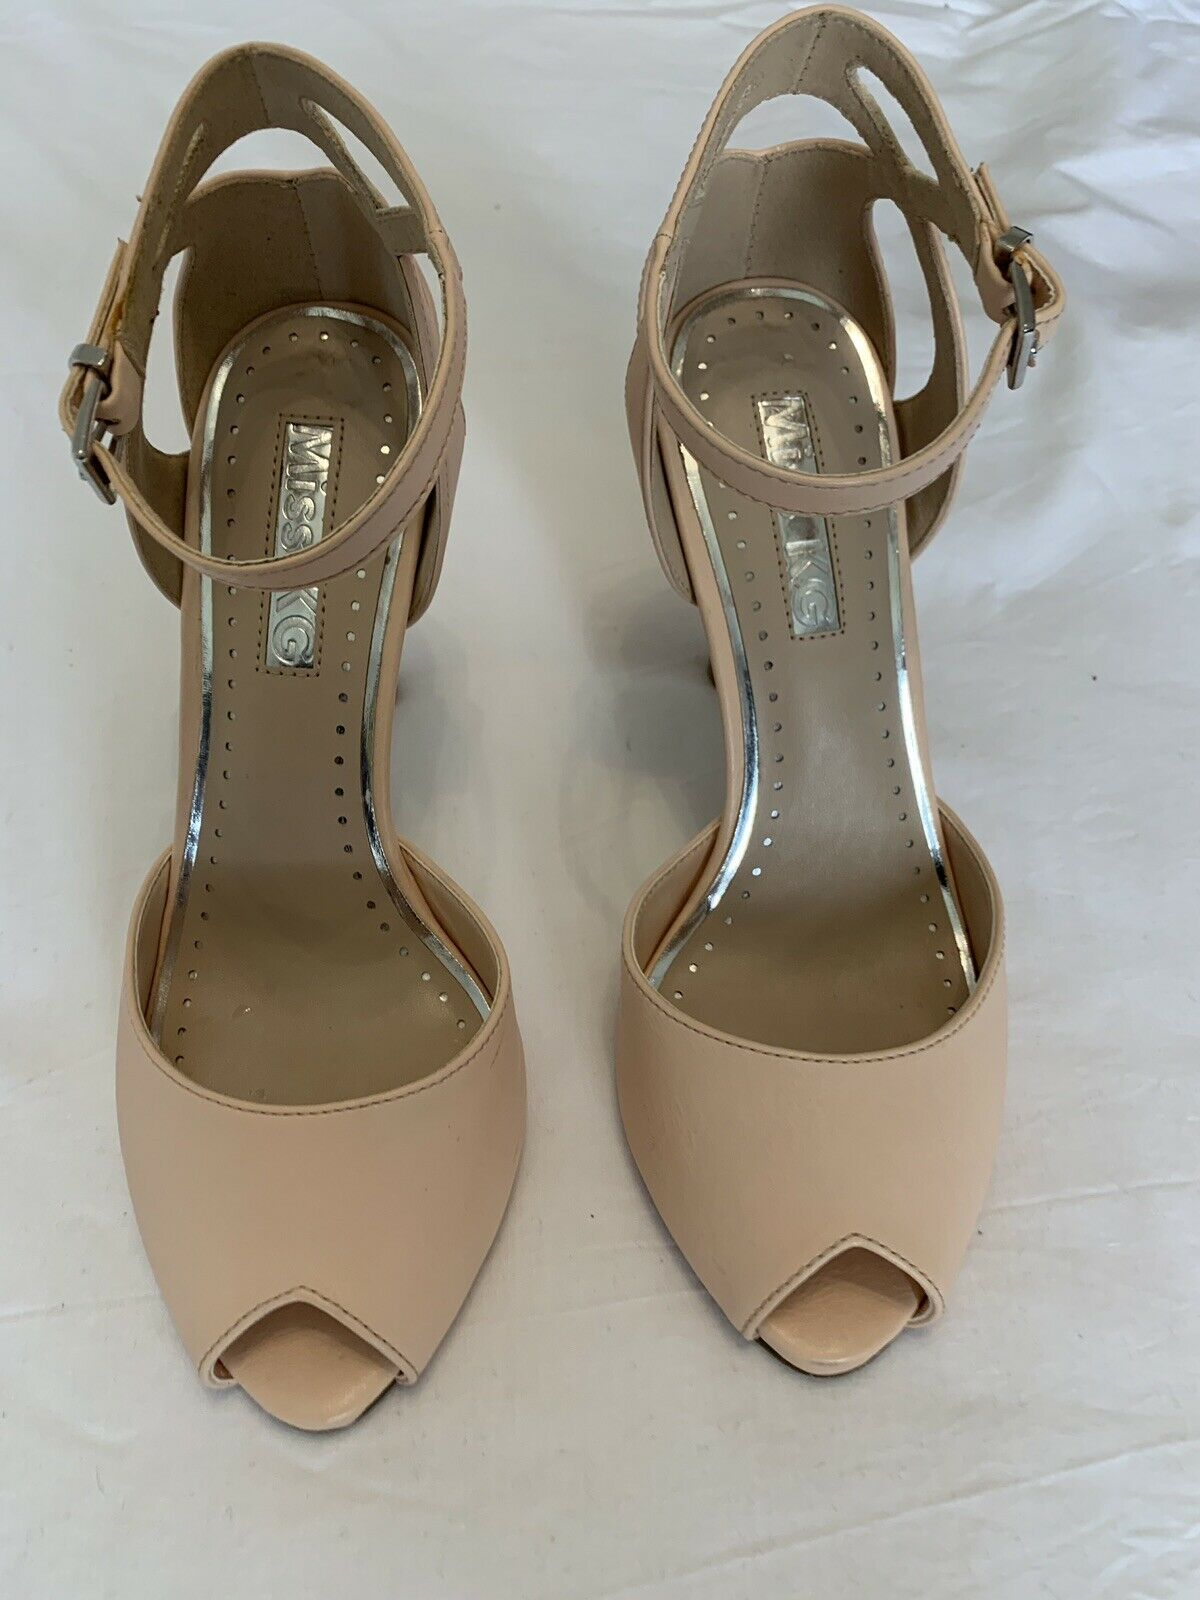 Womens shoes size 5 used Sandel